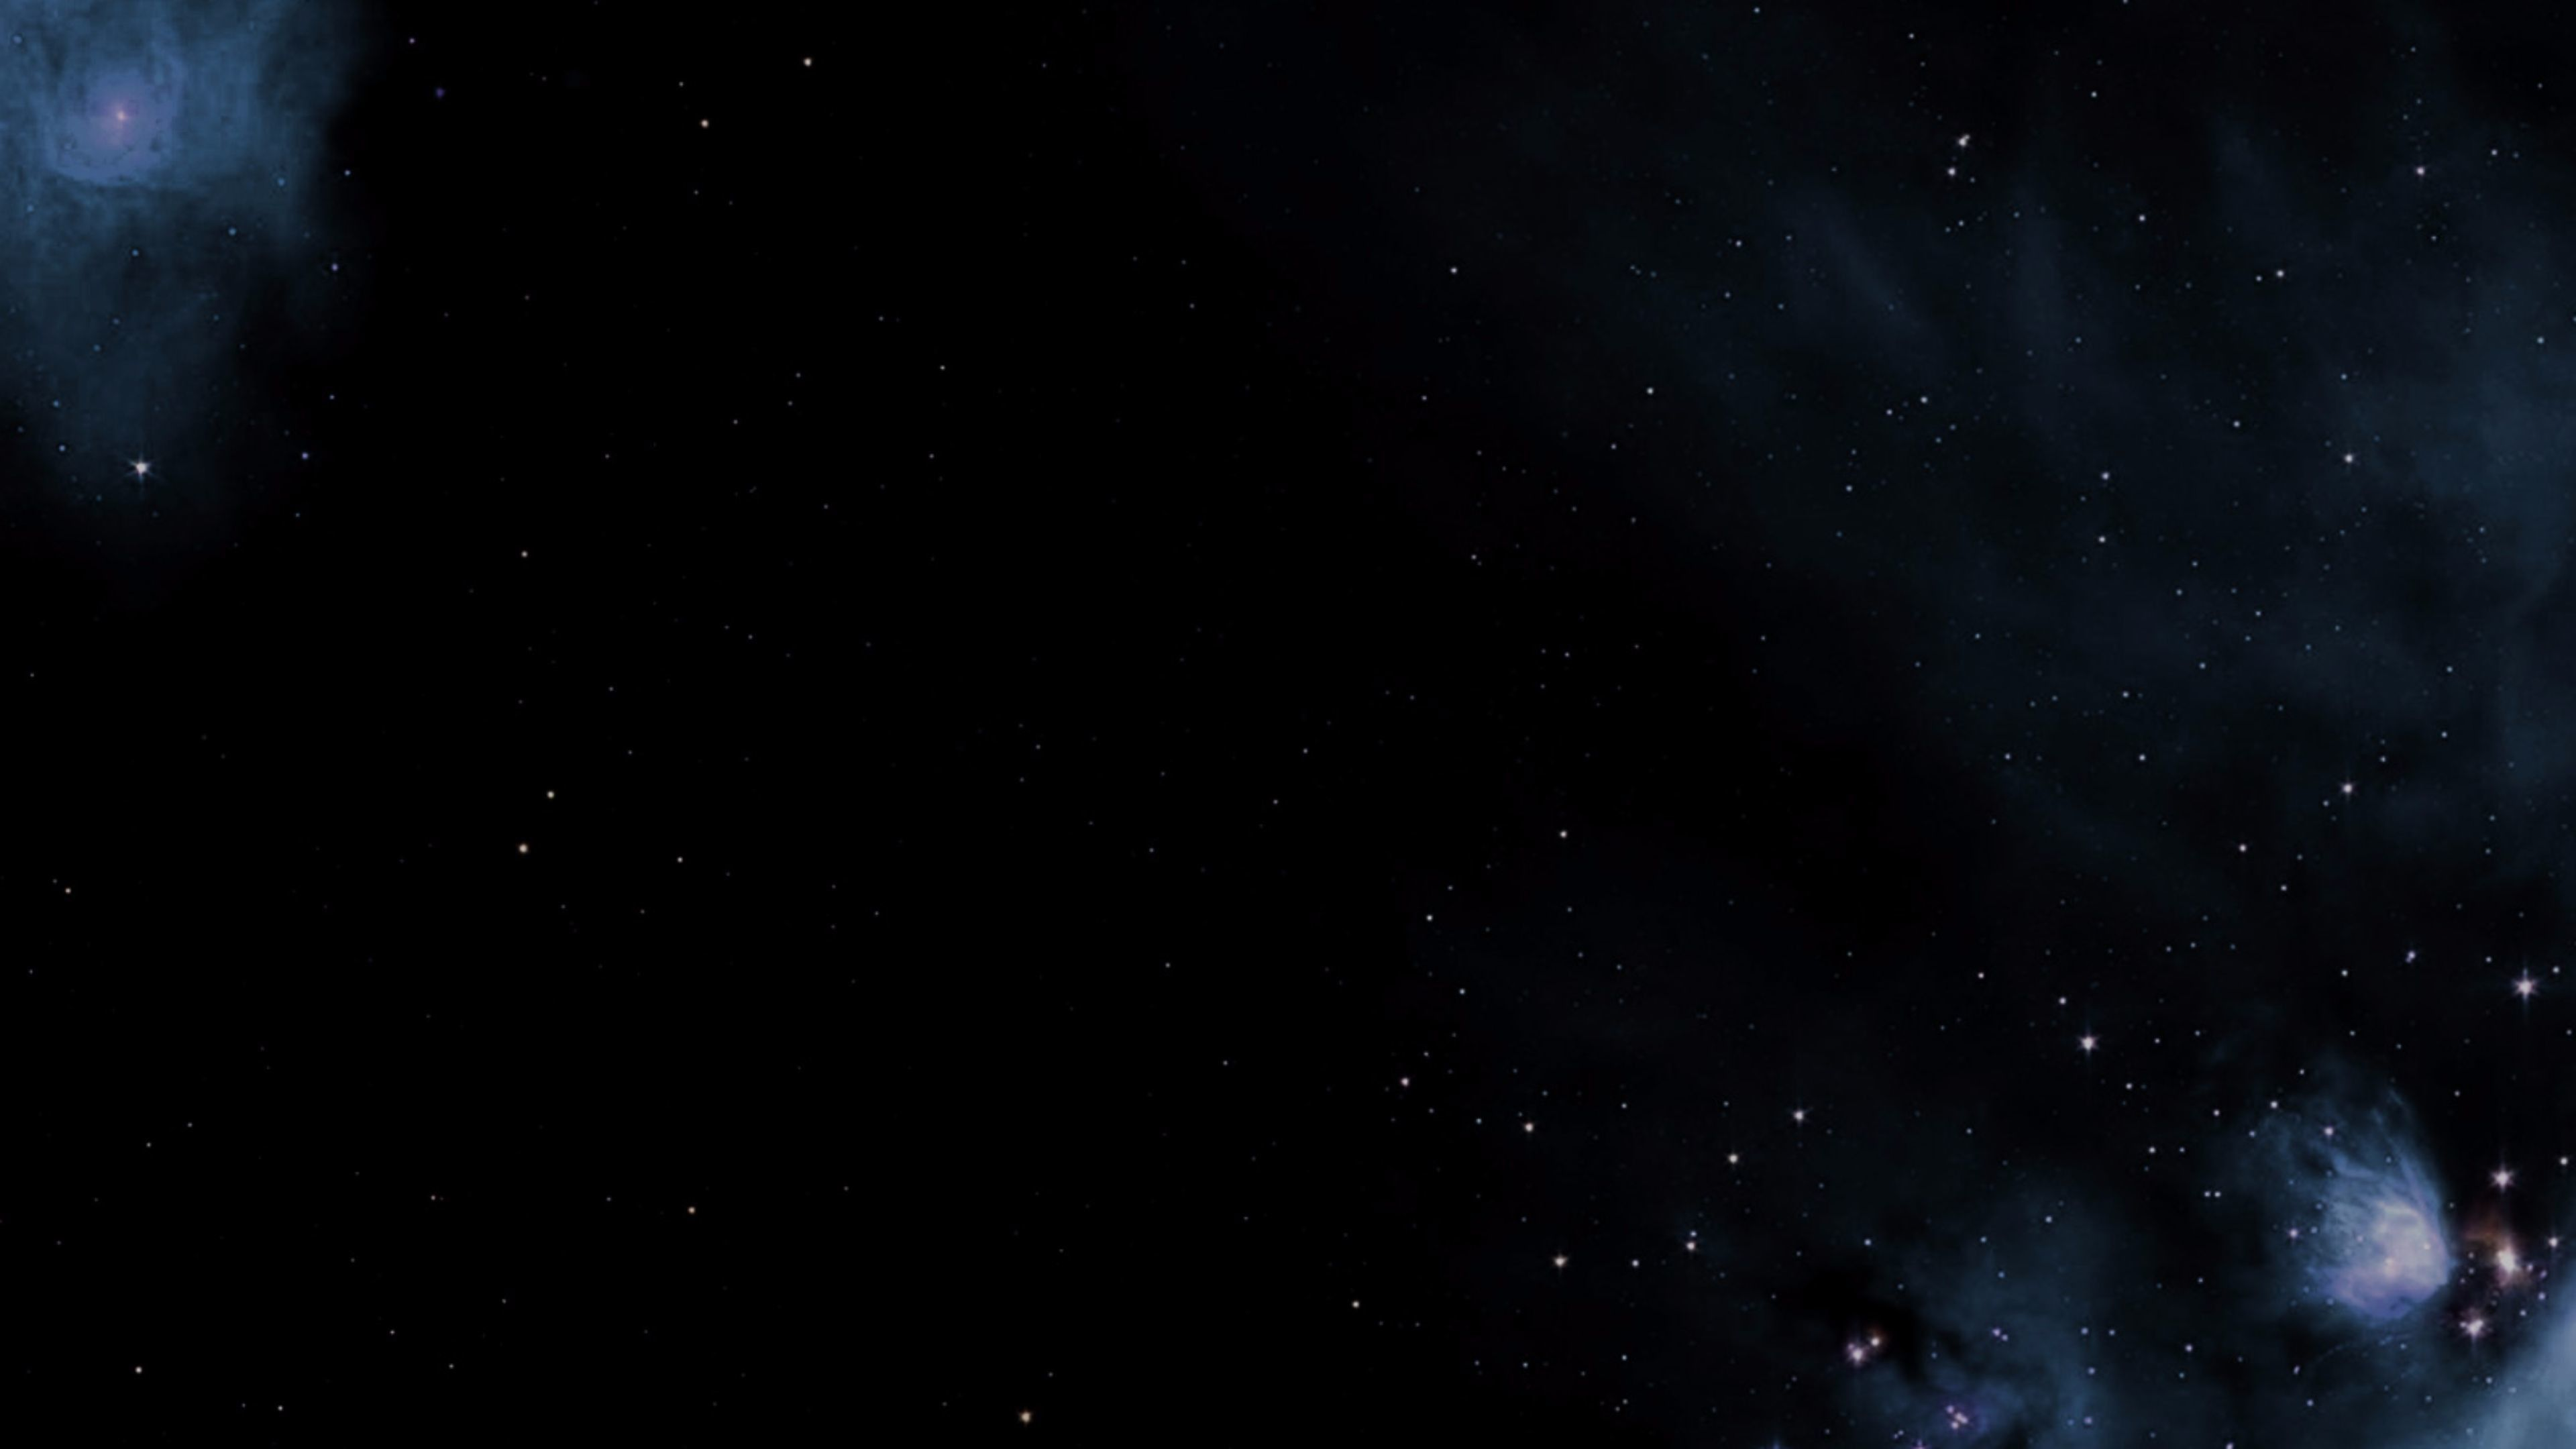 3840x2160 Dark Space Wallpaper Free Download Wallpaper Space Space Backgrounds Best Hd Background